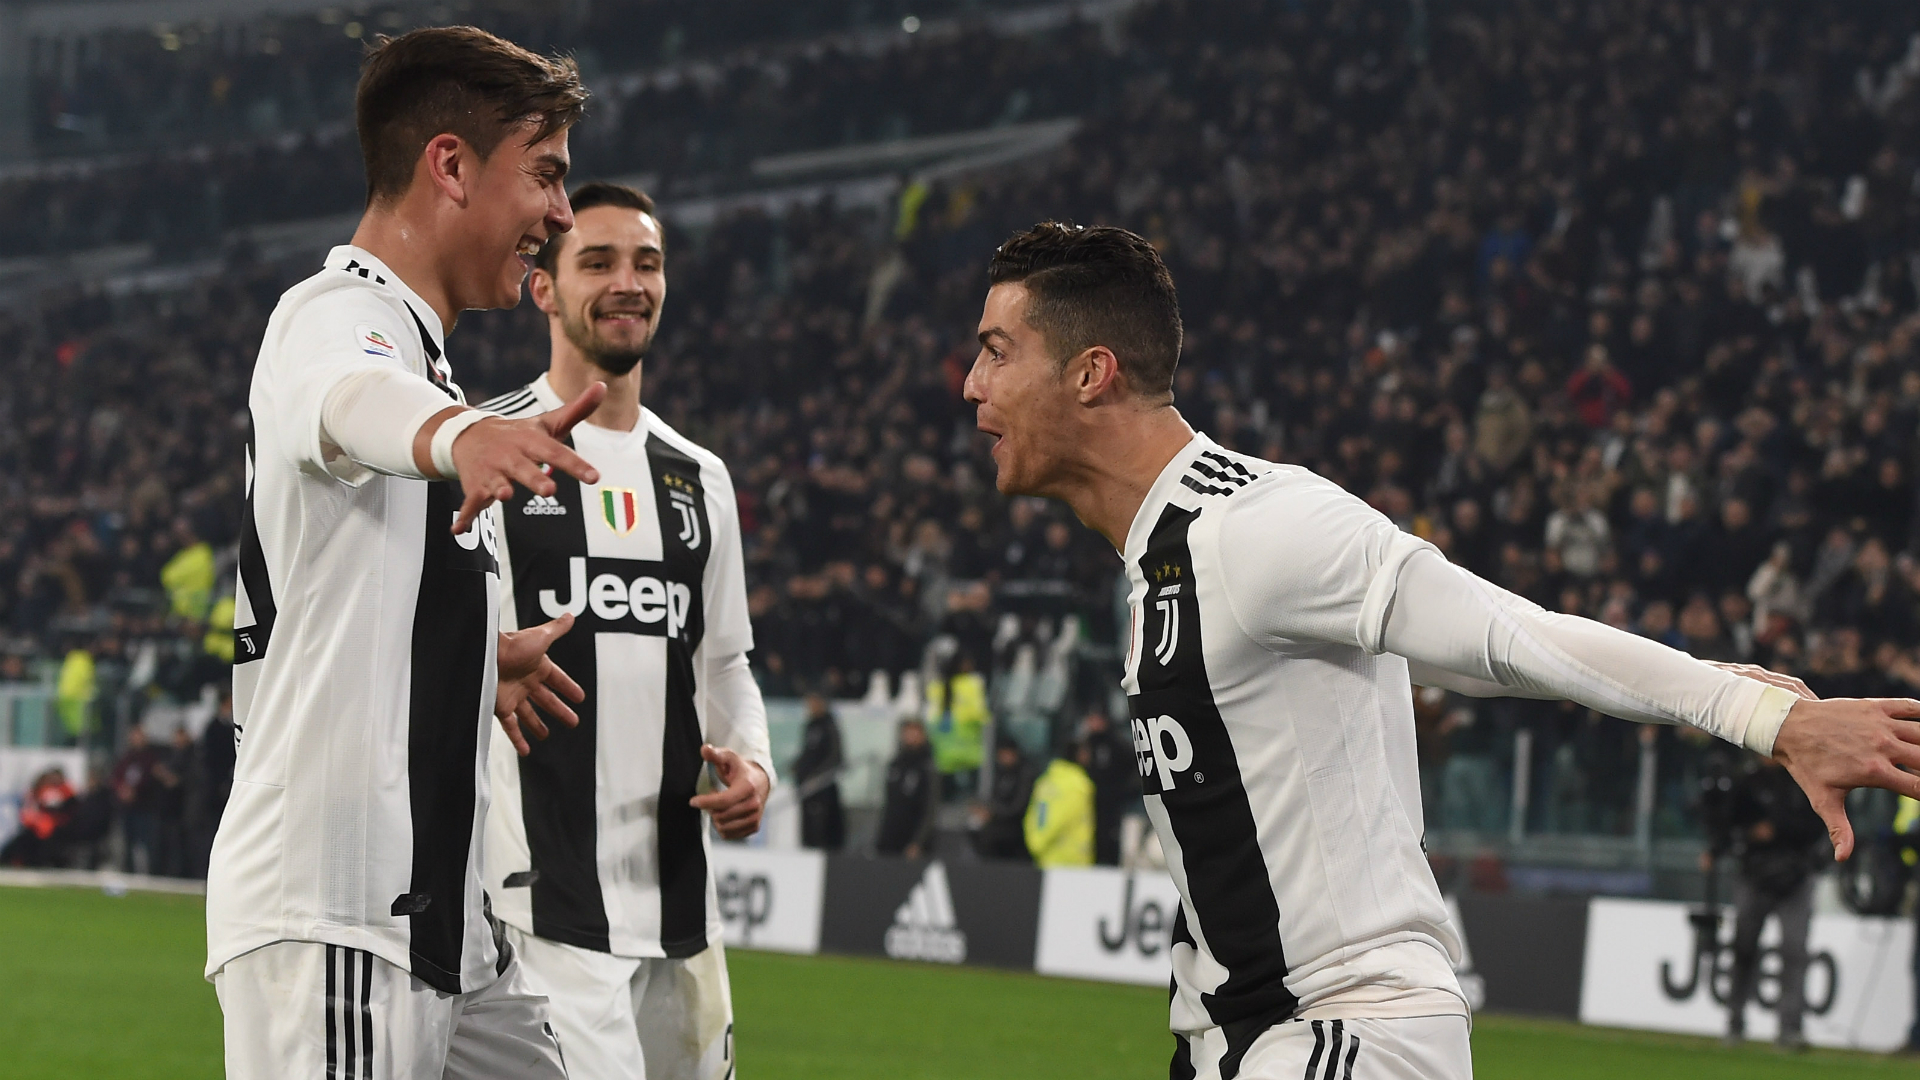 Playing alongside Ronaldo is a pleasure, says Dybala